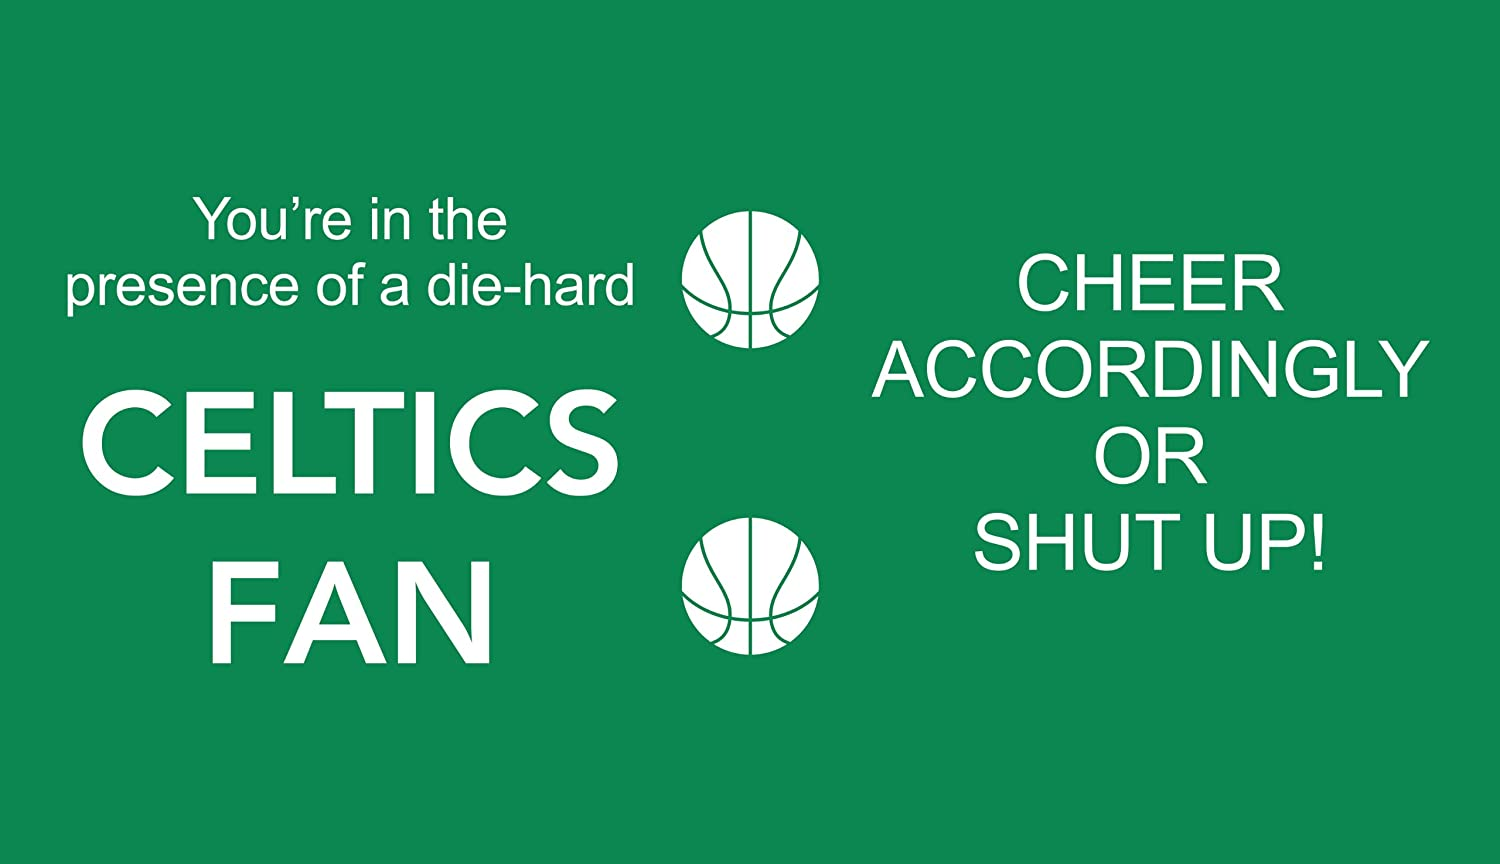 Tree-Free Greetings sg24141 Celtics Basketball Fan Sip N Go Stainless Steel Lined Travel Tumbler 16-Ounce Tree Free